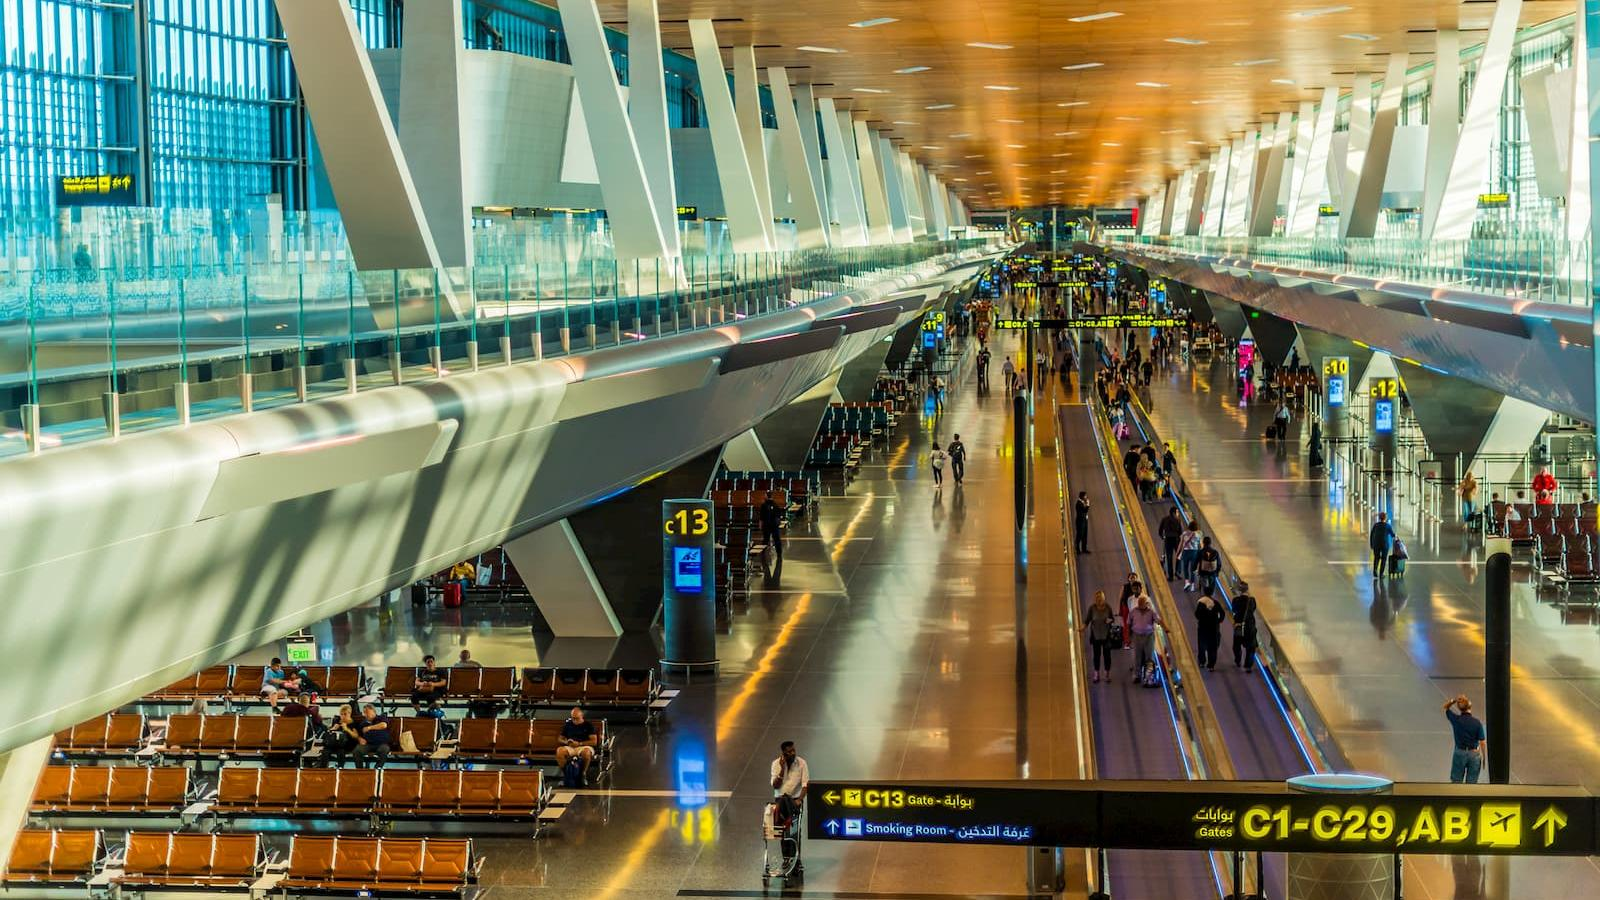 Hamad International Airport sees 12.4 percent increase in passengers in 2019